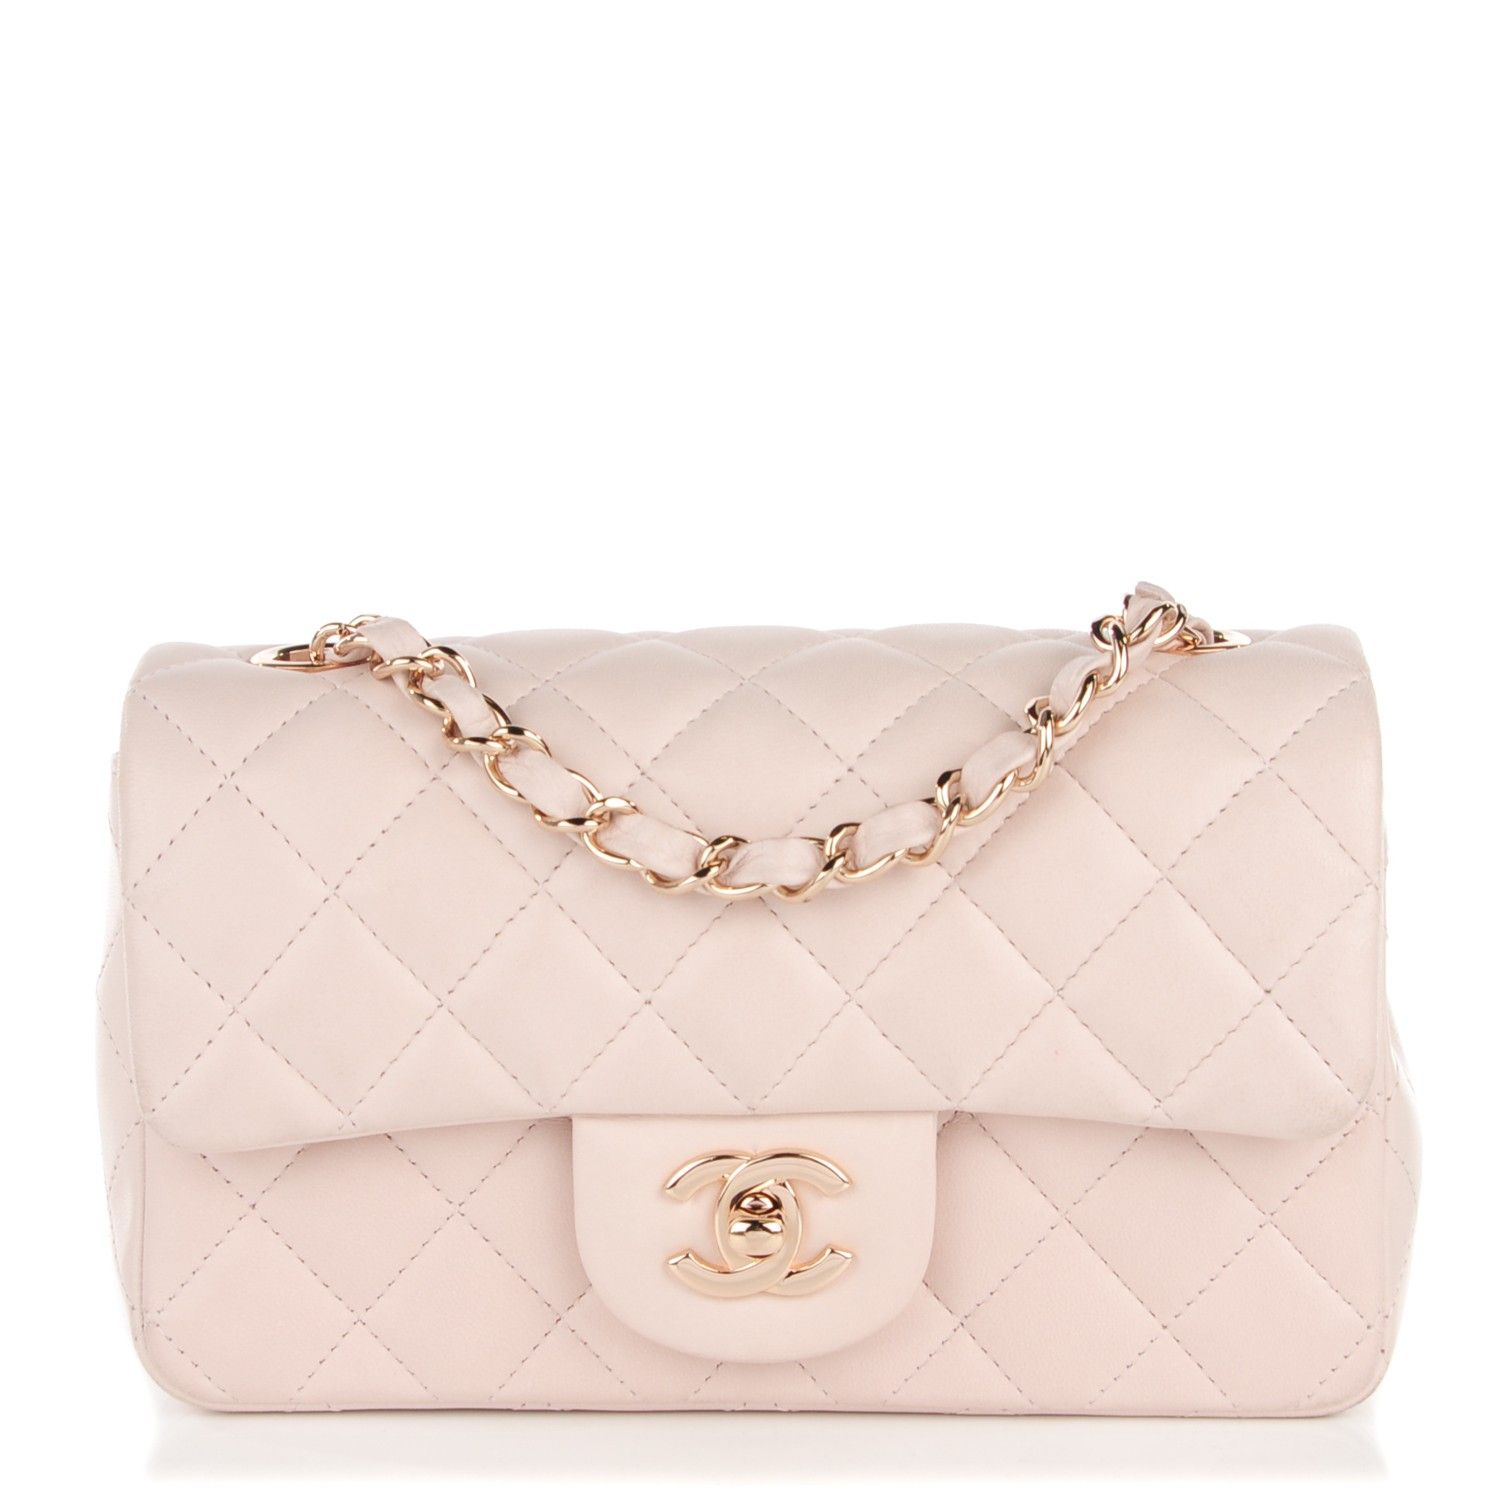 36728aebb161 This is an authentic CHANEL Lambskin Quilted Rectangular Mini Flap in Light  Pink. The chic little cross body classic mini flap is featured in soft  lambskin ...